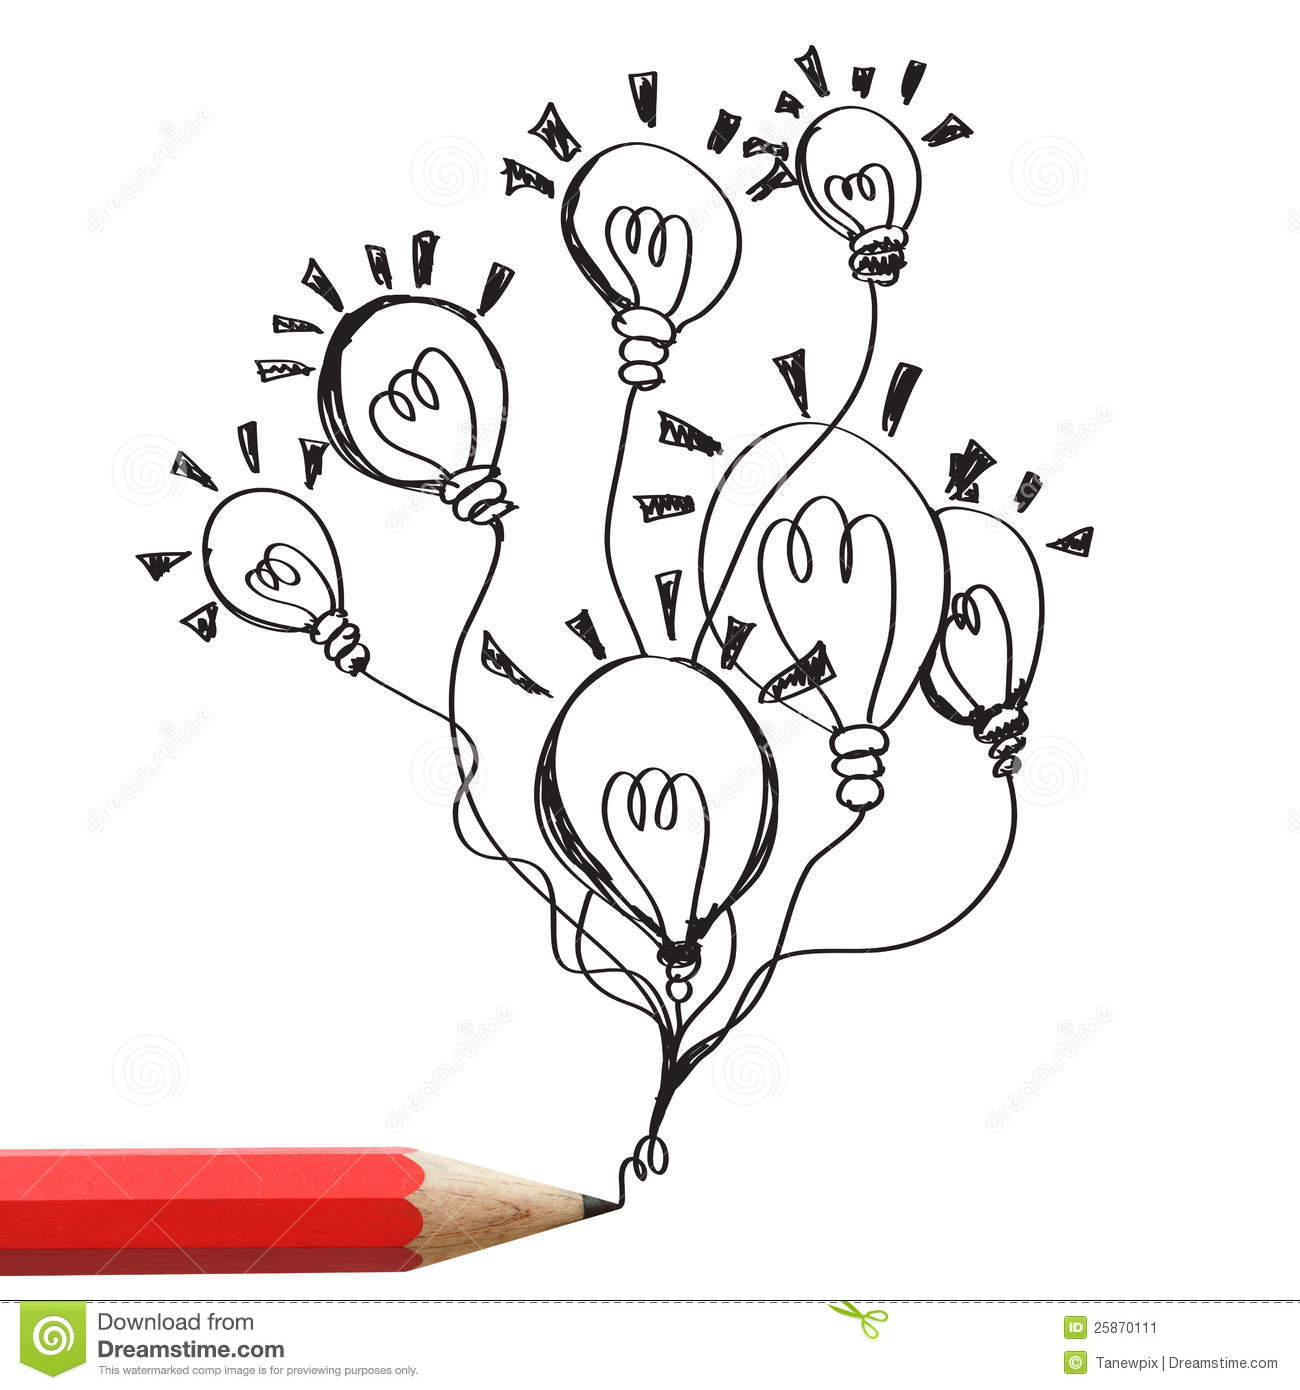 Red Pencil Drawing Light Bulbs Idea Concept. Stock Image - Image ...